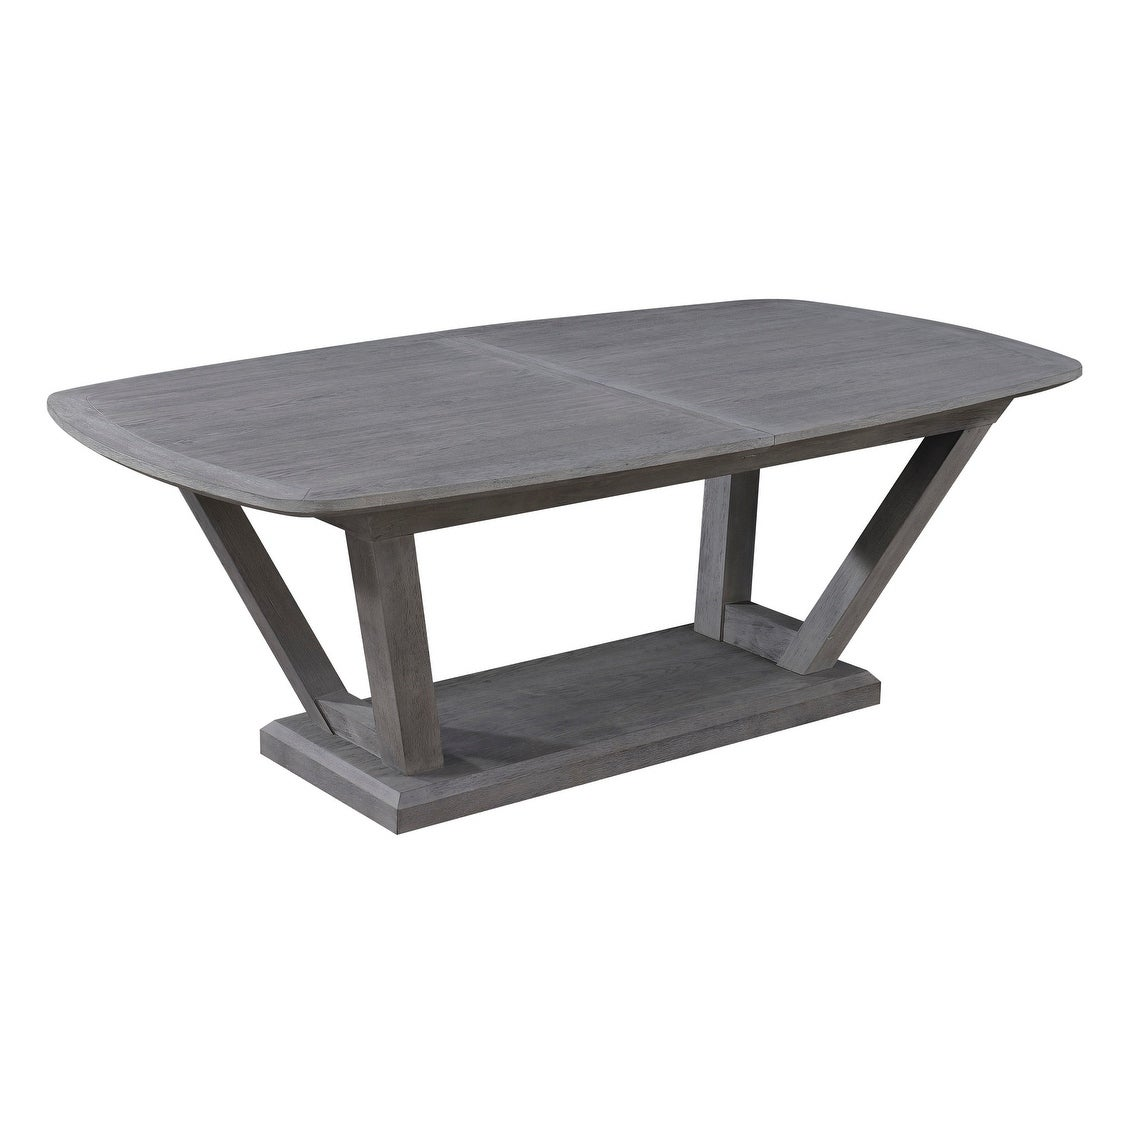 Strick Bolton Fara Slate Grey 84 Inch Dining Table With Self Storing Erfly Leaf